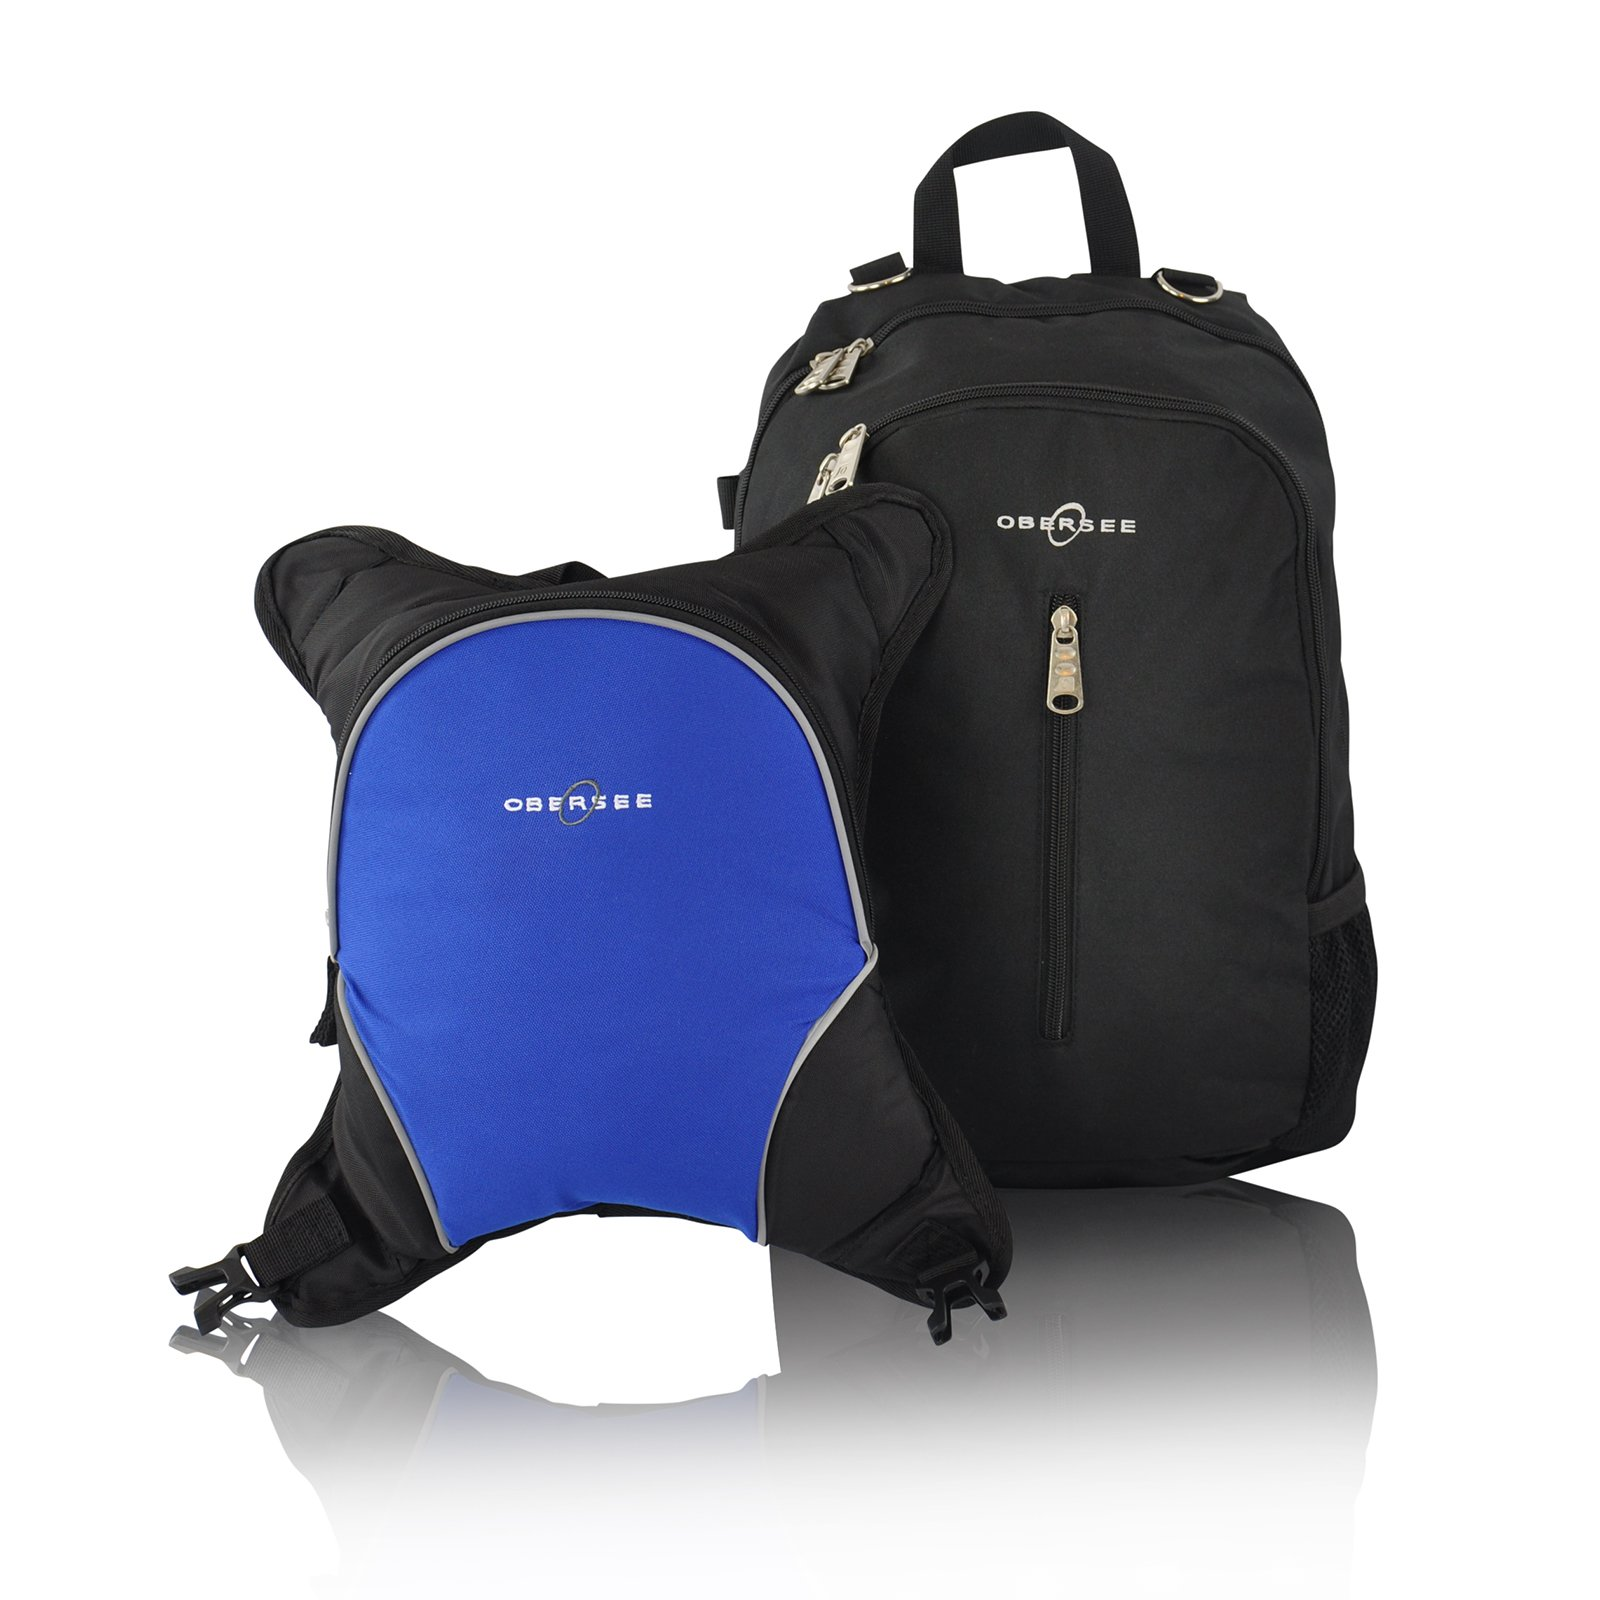 Rio Diaper Backpack with Baby Bottle Cooler and Changing Mat, Shoulder Baby Bag, Food Cooler, Clip to Stroller (Black/Royal Blue) - Obersee